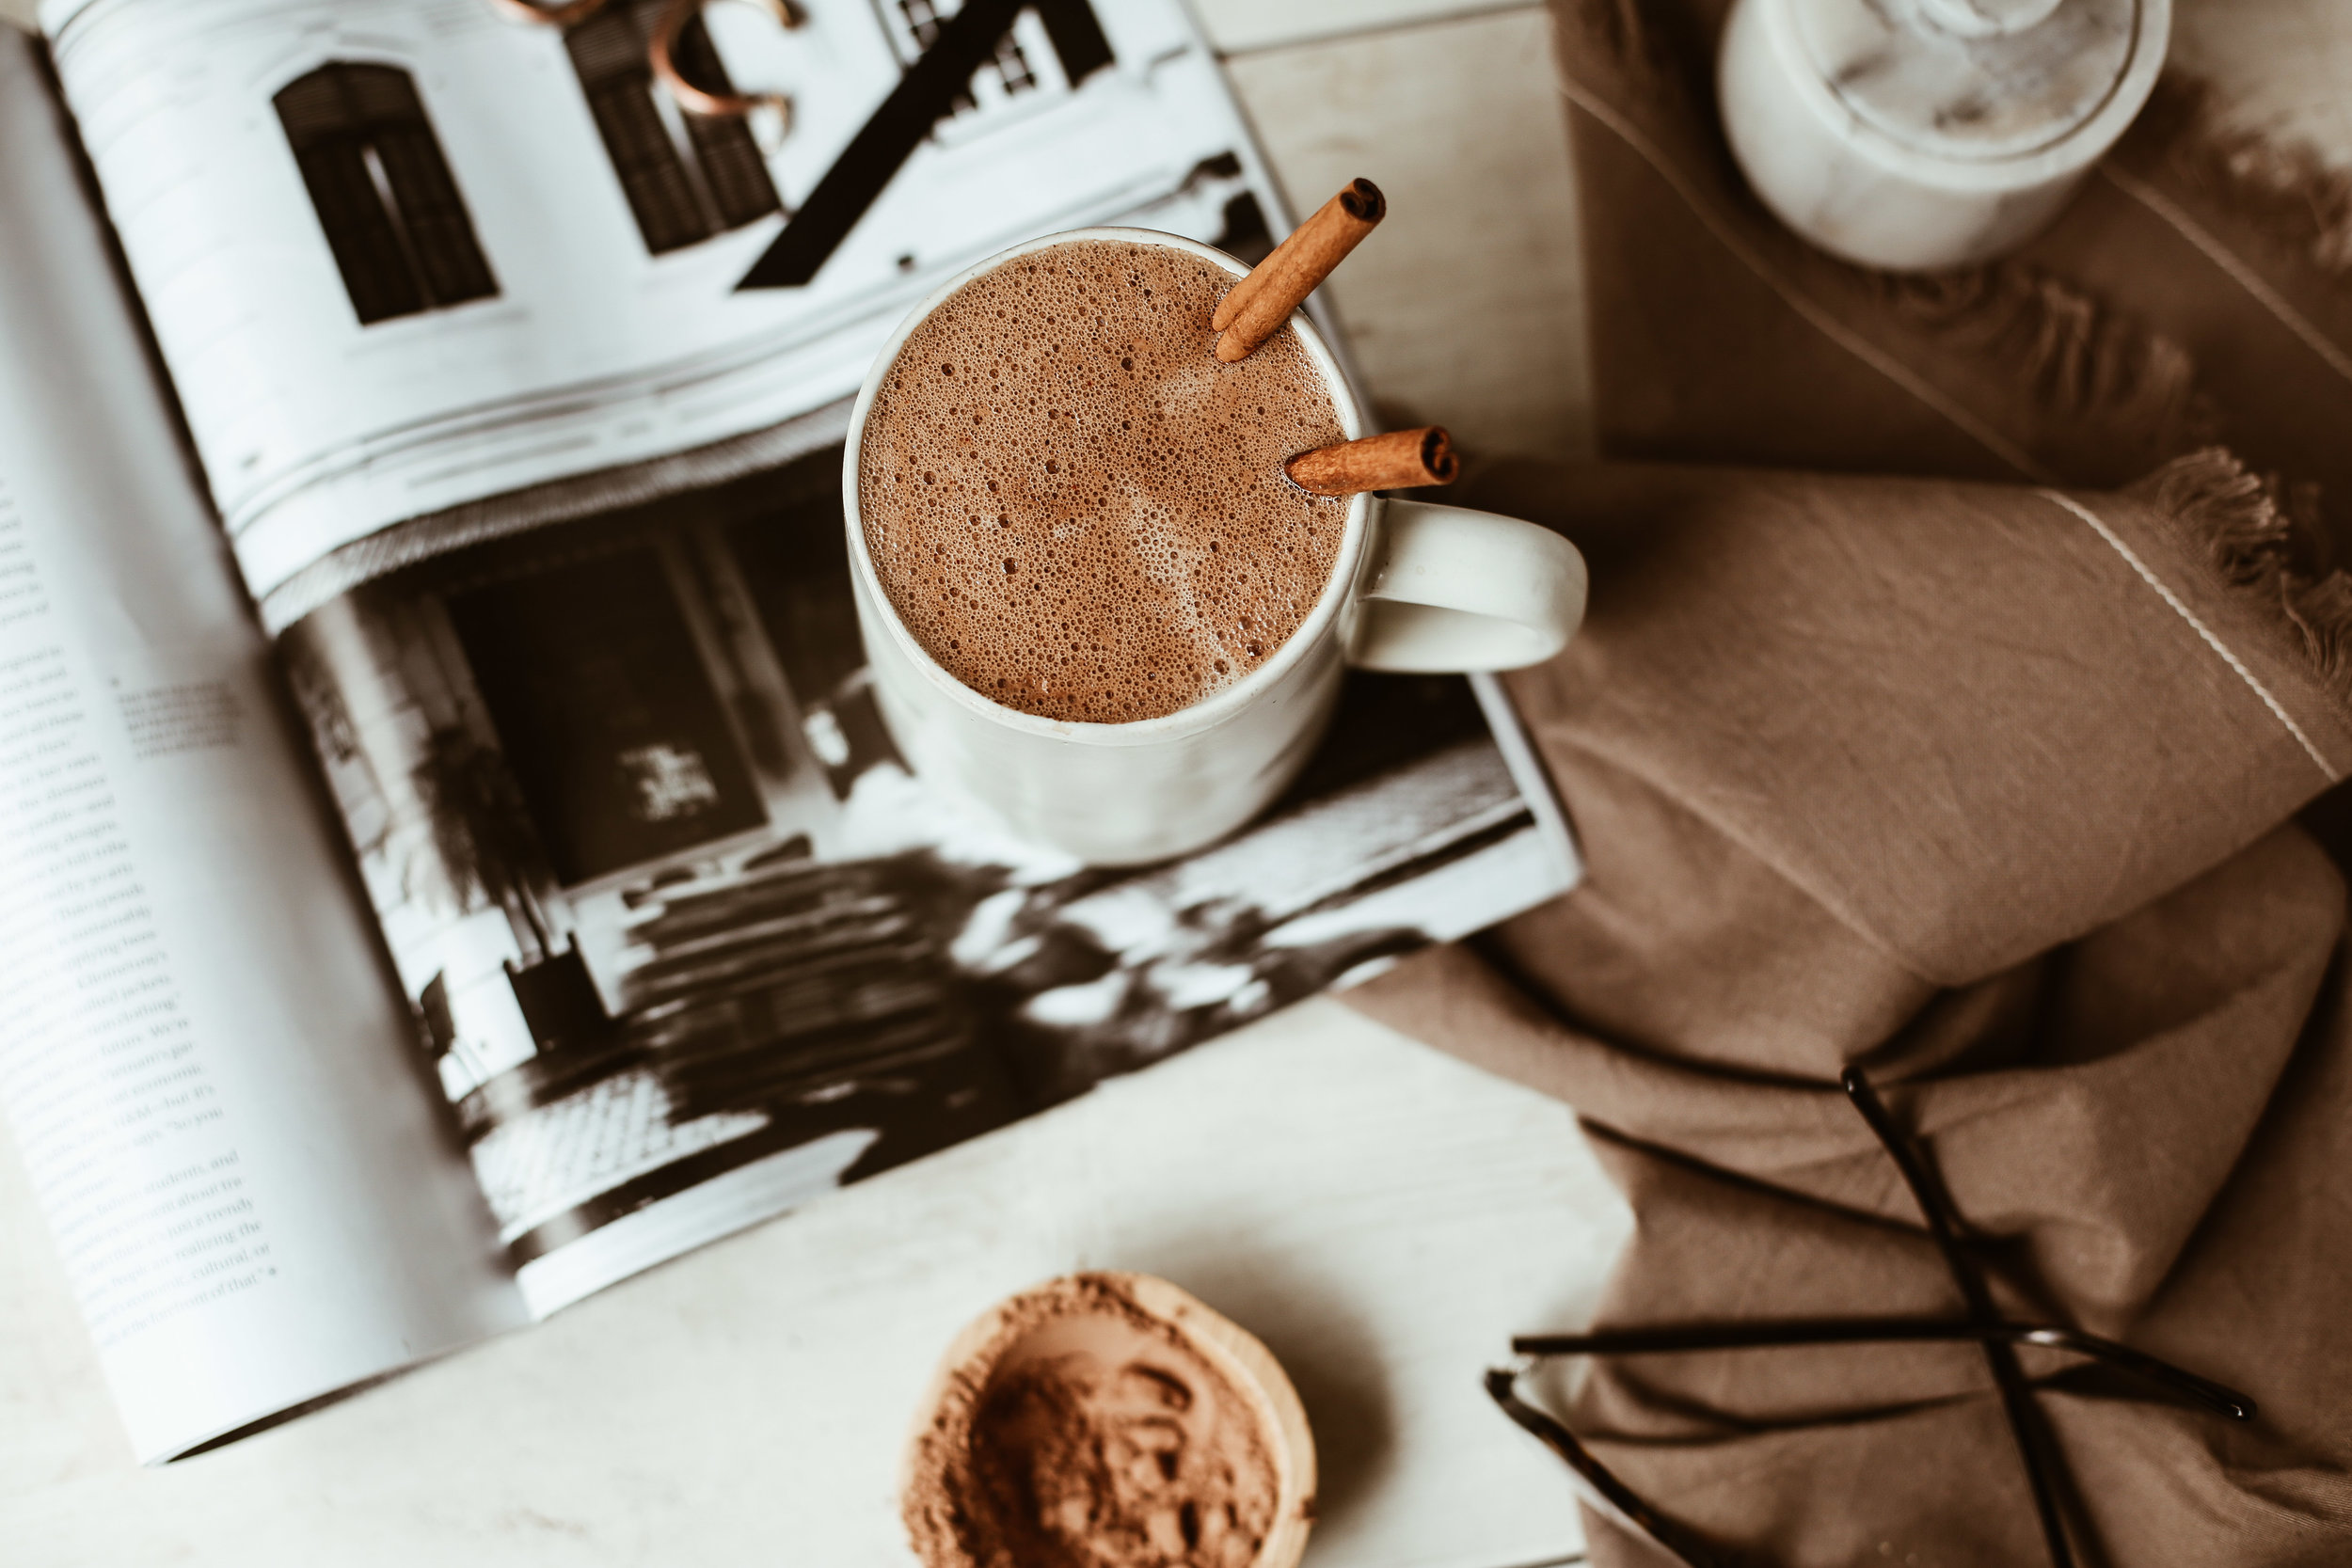 MEXICAN HOT CHOCOLATE WITH CBD OIL - SERVES 1